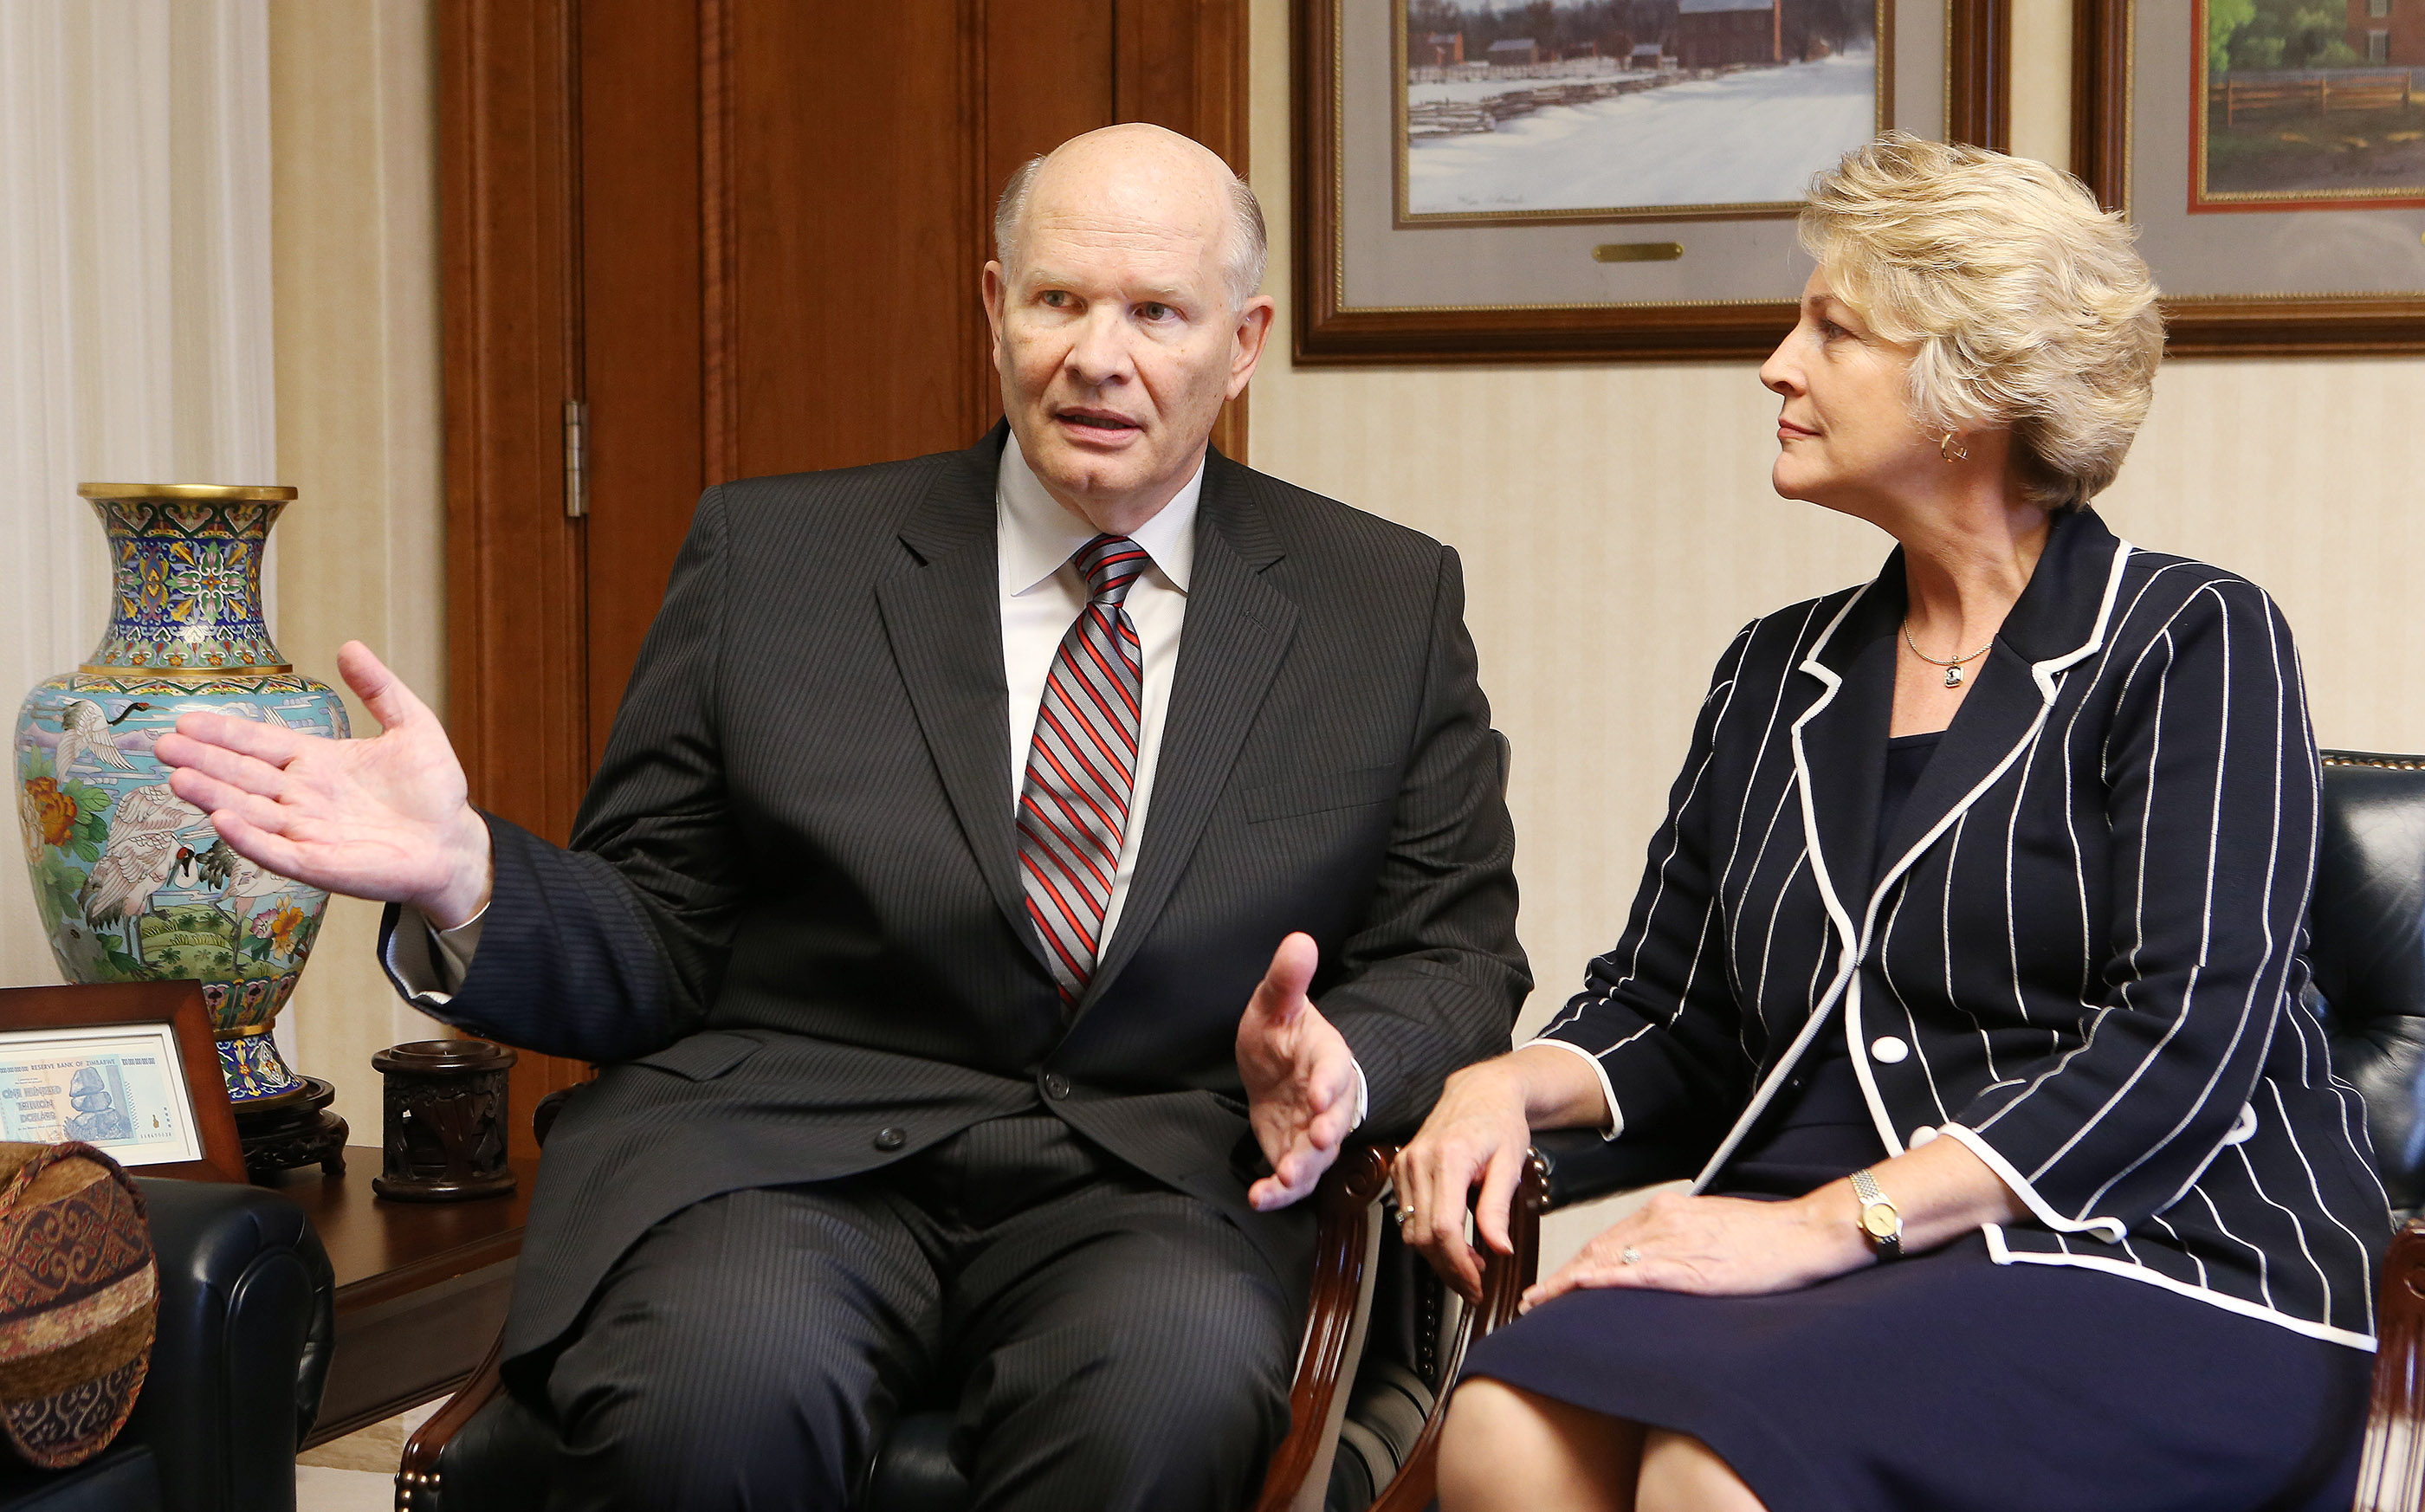 Elder Dale G. Renlund is interviewed shortly after his call to the Quorum of the Twelve Apostles in October 2015. He is pictured with his wife, Sister Ruth Renlund.